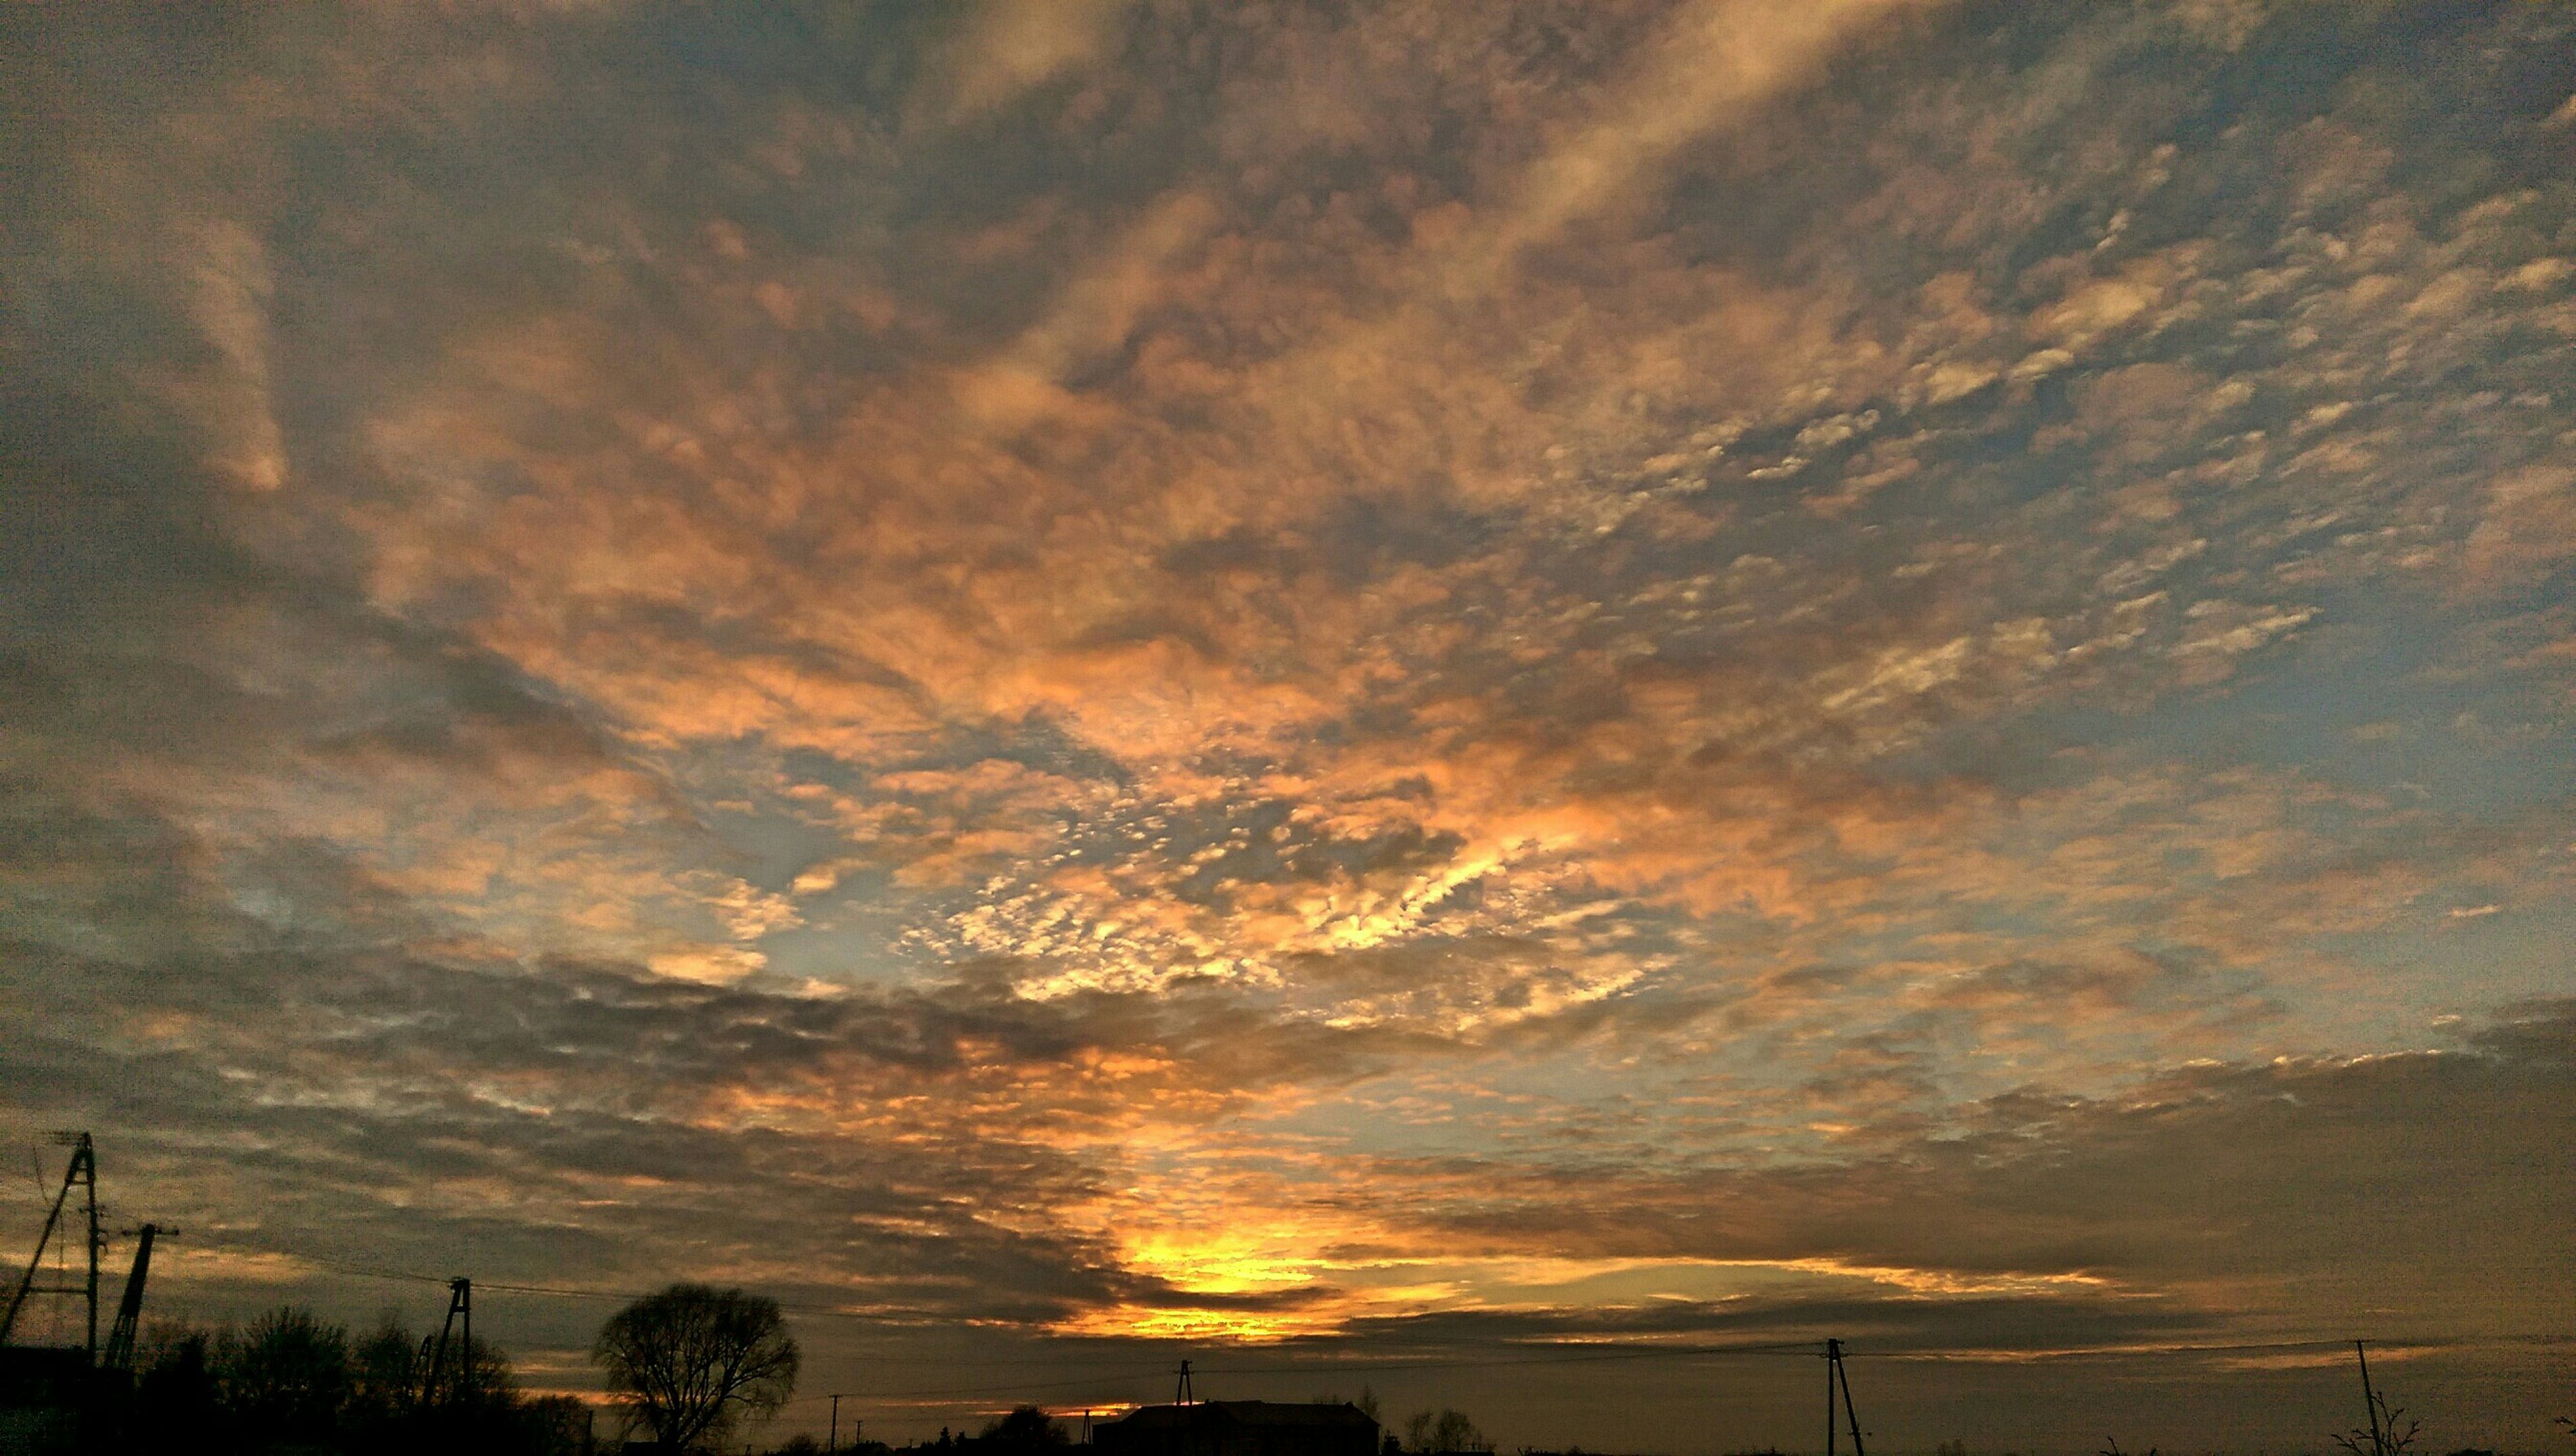 sunset, silhouette, sky, cloud - sky, beauty in nature, tranquility, scenics, low angle view, cloudy, tranquil scene, nature, dramatic sky, weather, cloud, idyllic, orange color, dusk, tree, overcast, outdoors